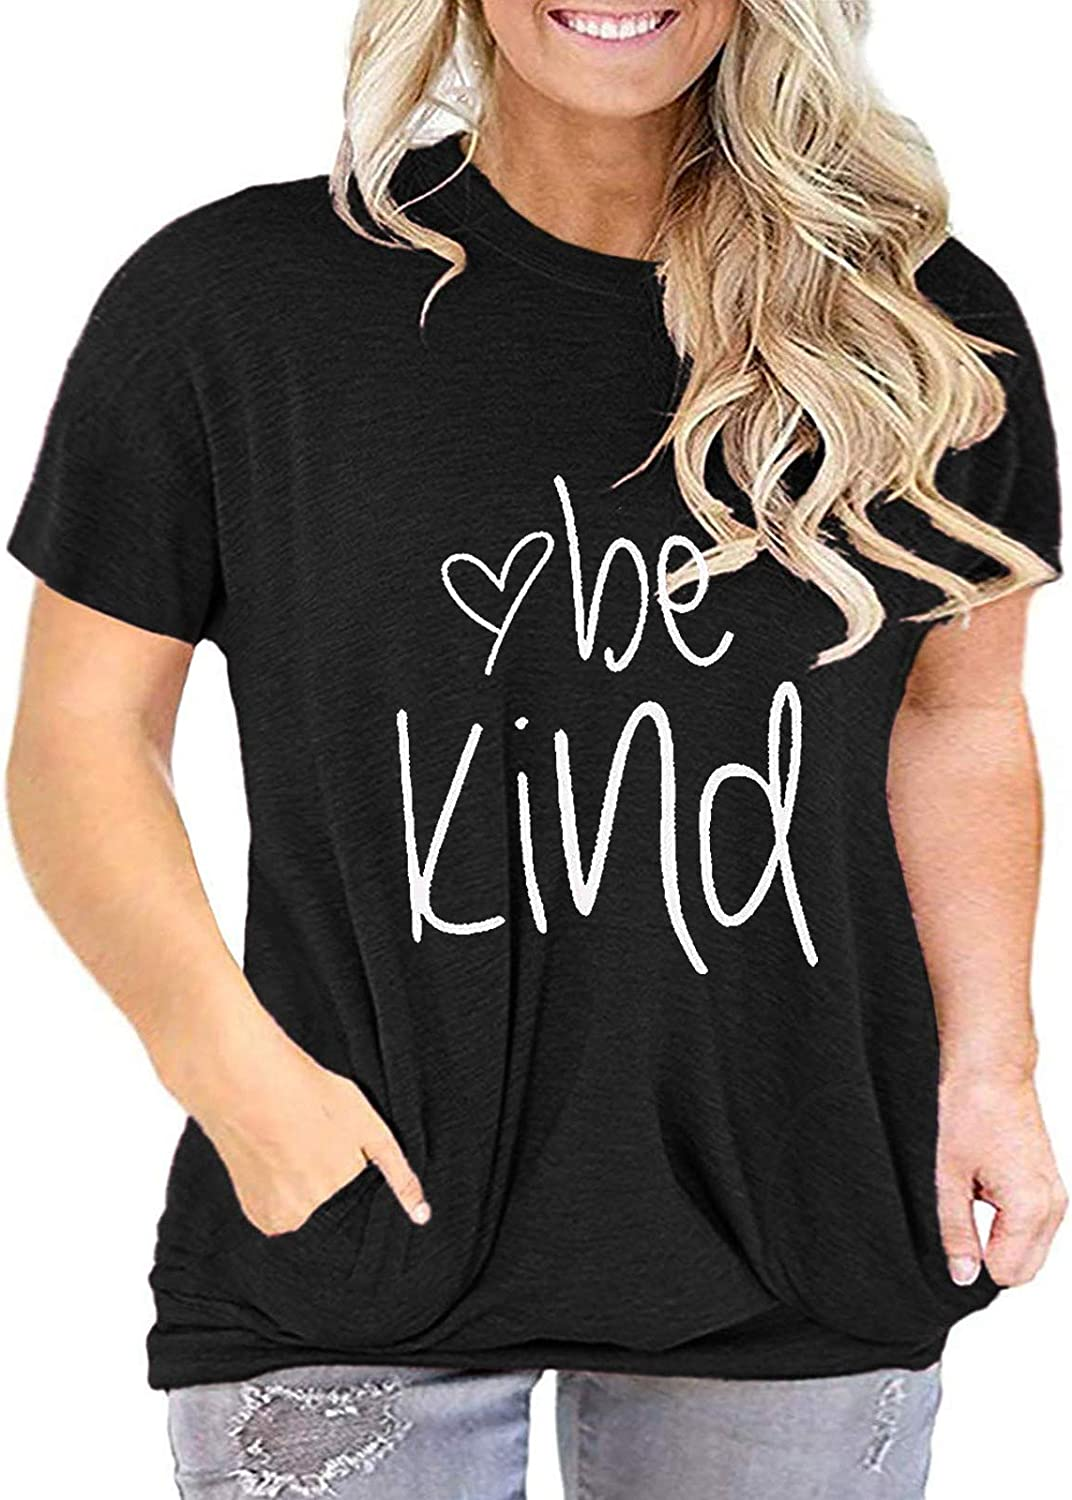 Plus Size Be Kind Tshirts Womens Graphic Tees Teacher Shirts Tunic Tops with Pockets